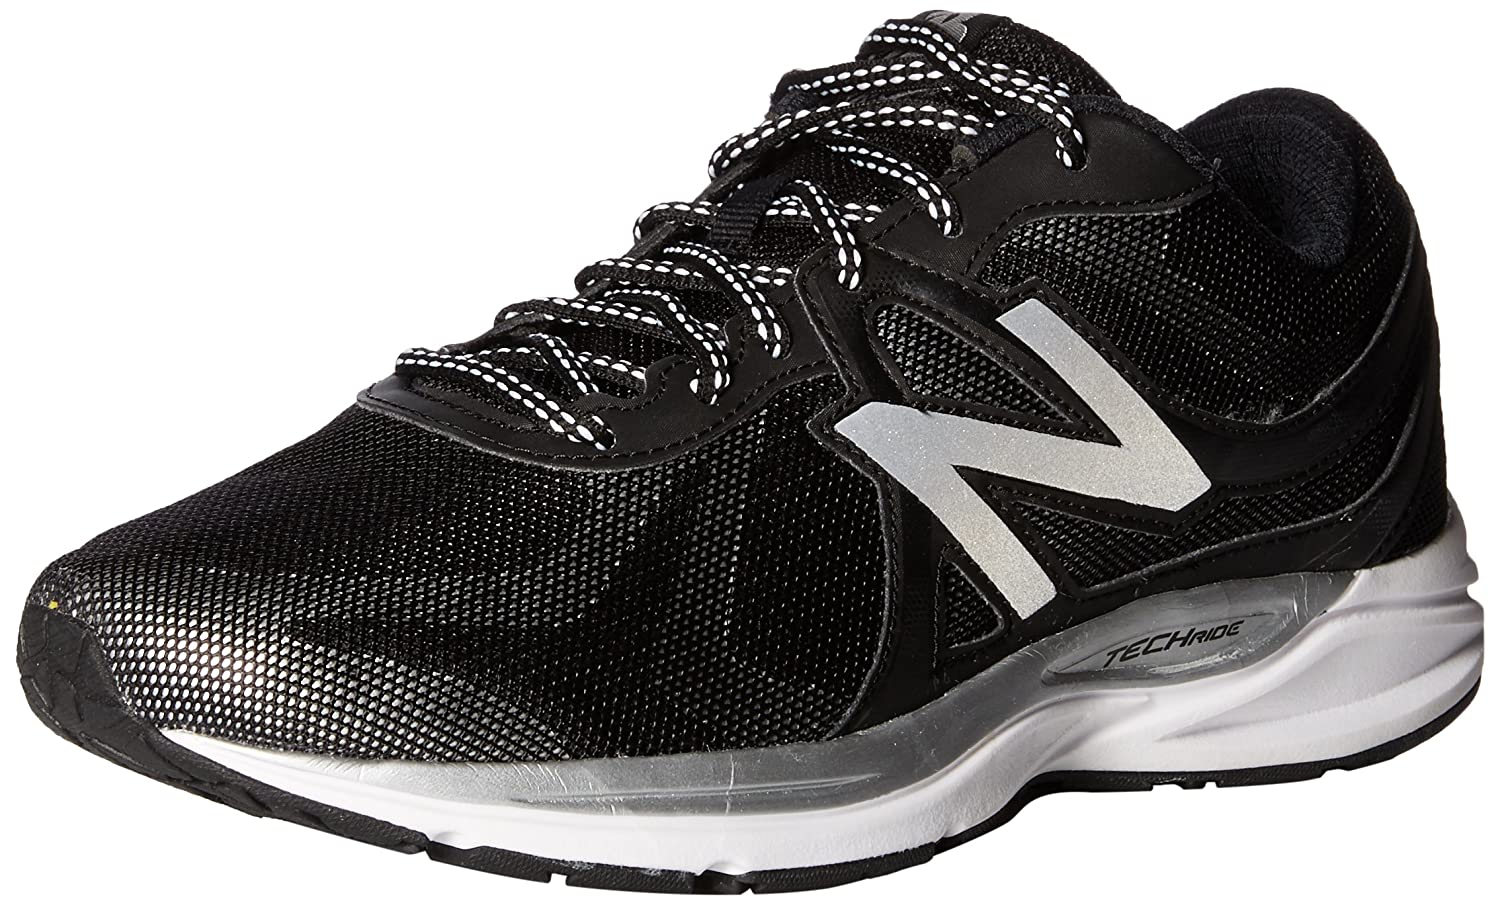 New Balance Women's W580LG5 Running Shoe B01CQV6XBA 7.5 B(M) US|Black